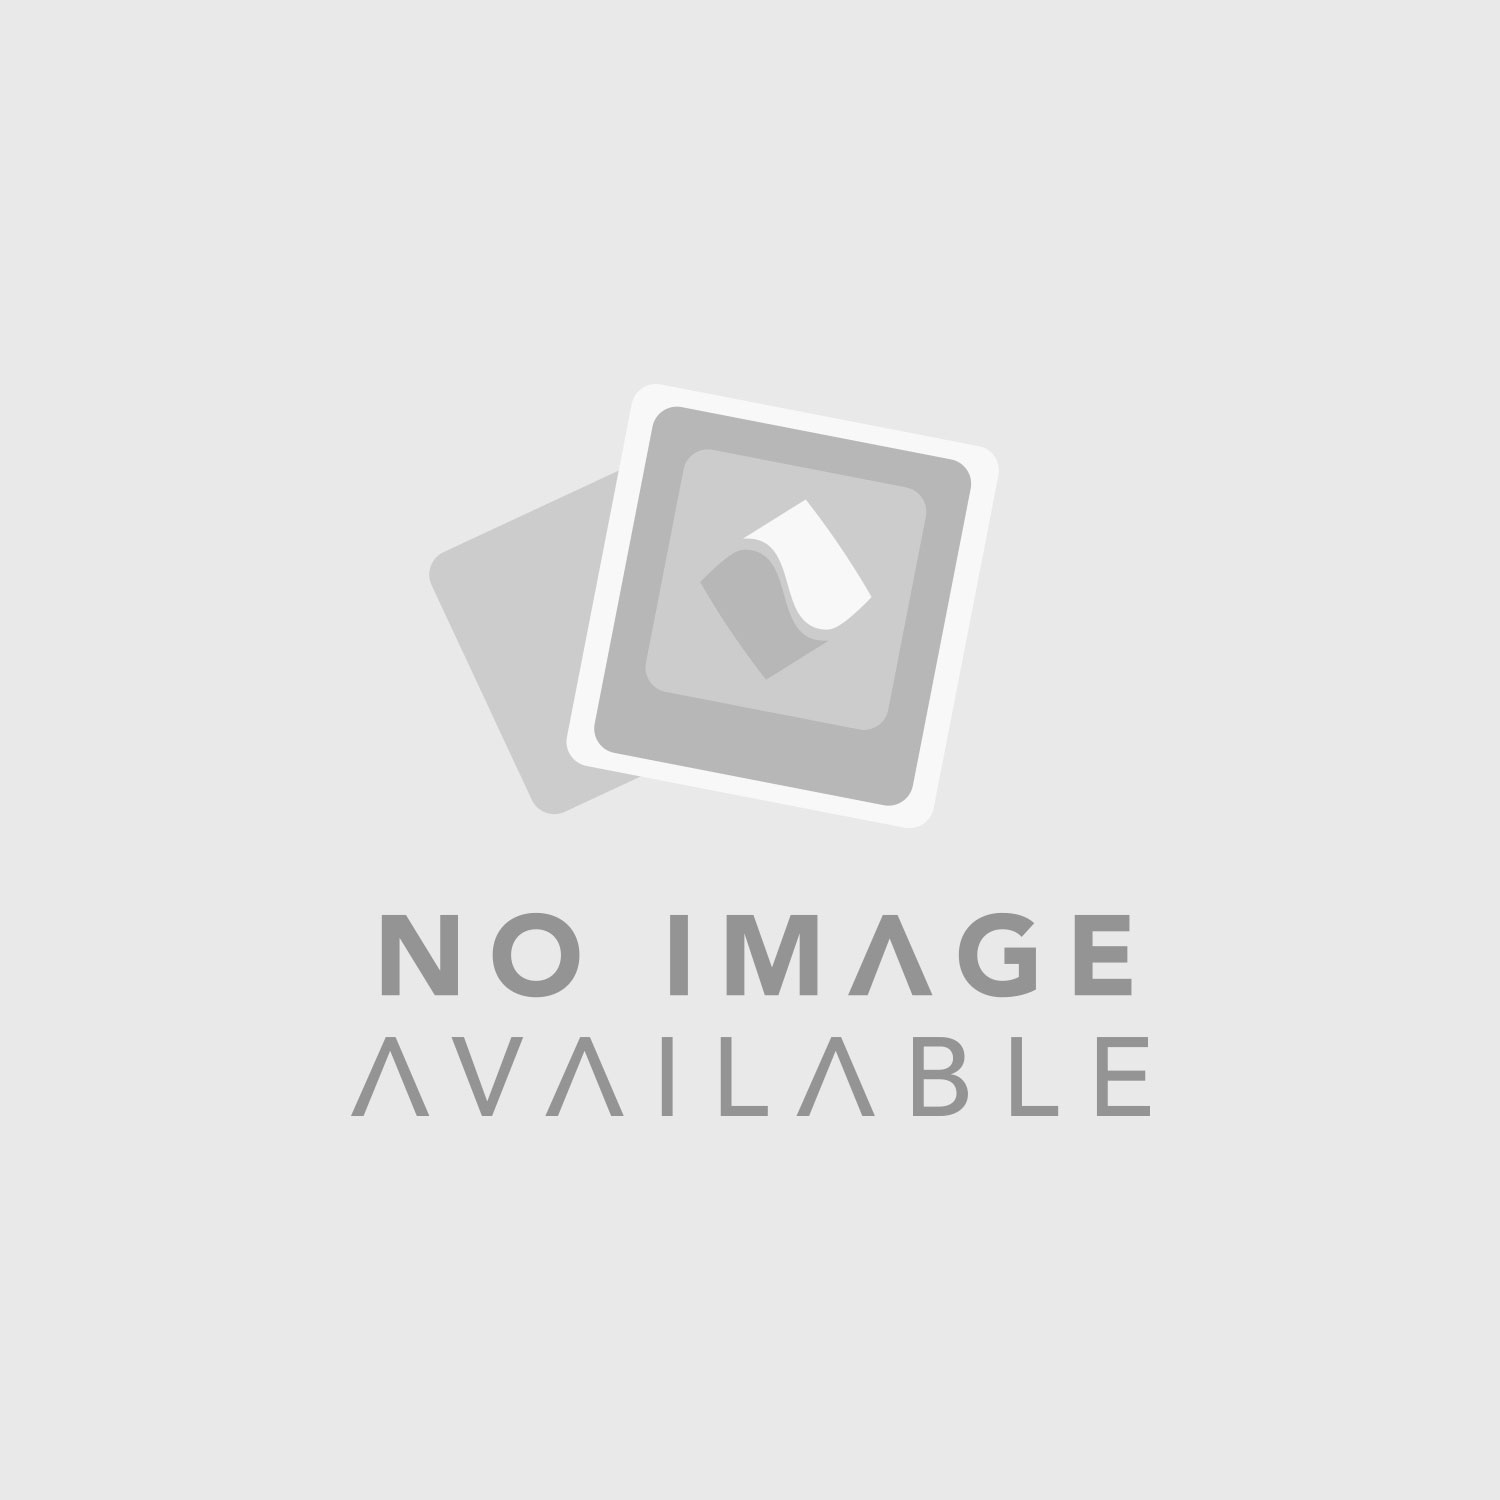 Yamaha HS7I 2-Way Bi-Amp Powered Studio Monitor (Single, Black)